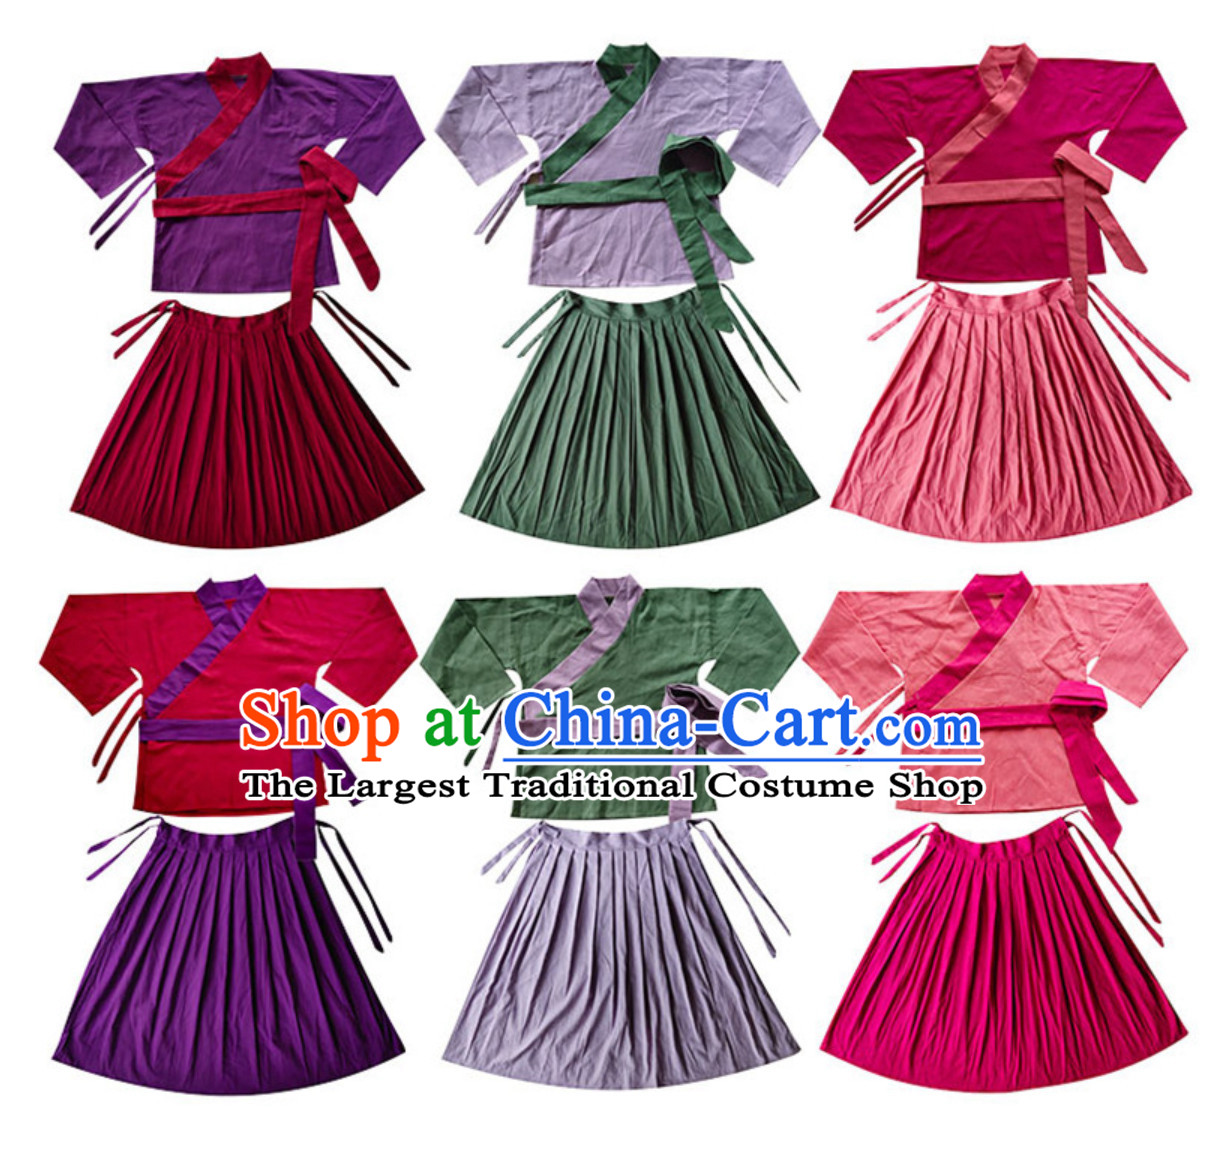 Ancient Chinese Female Servant Costumes Poor People Clothes Costume Farmer Costumes Chinese Civilian Costumes for Women